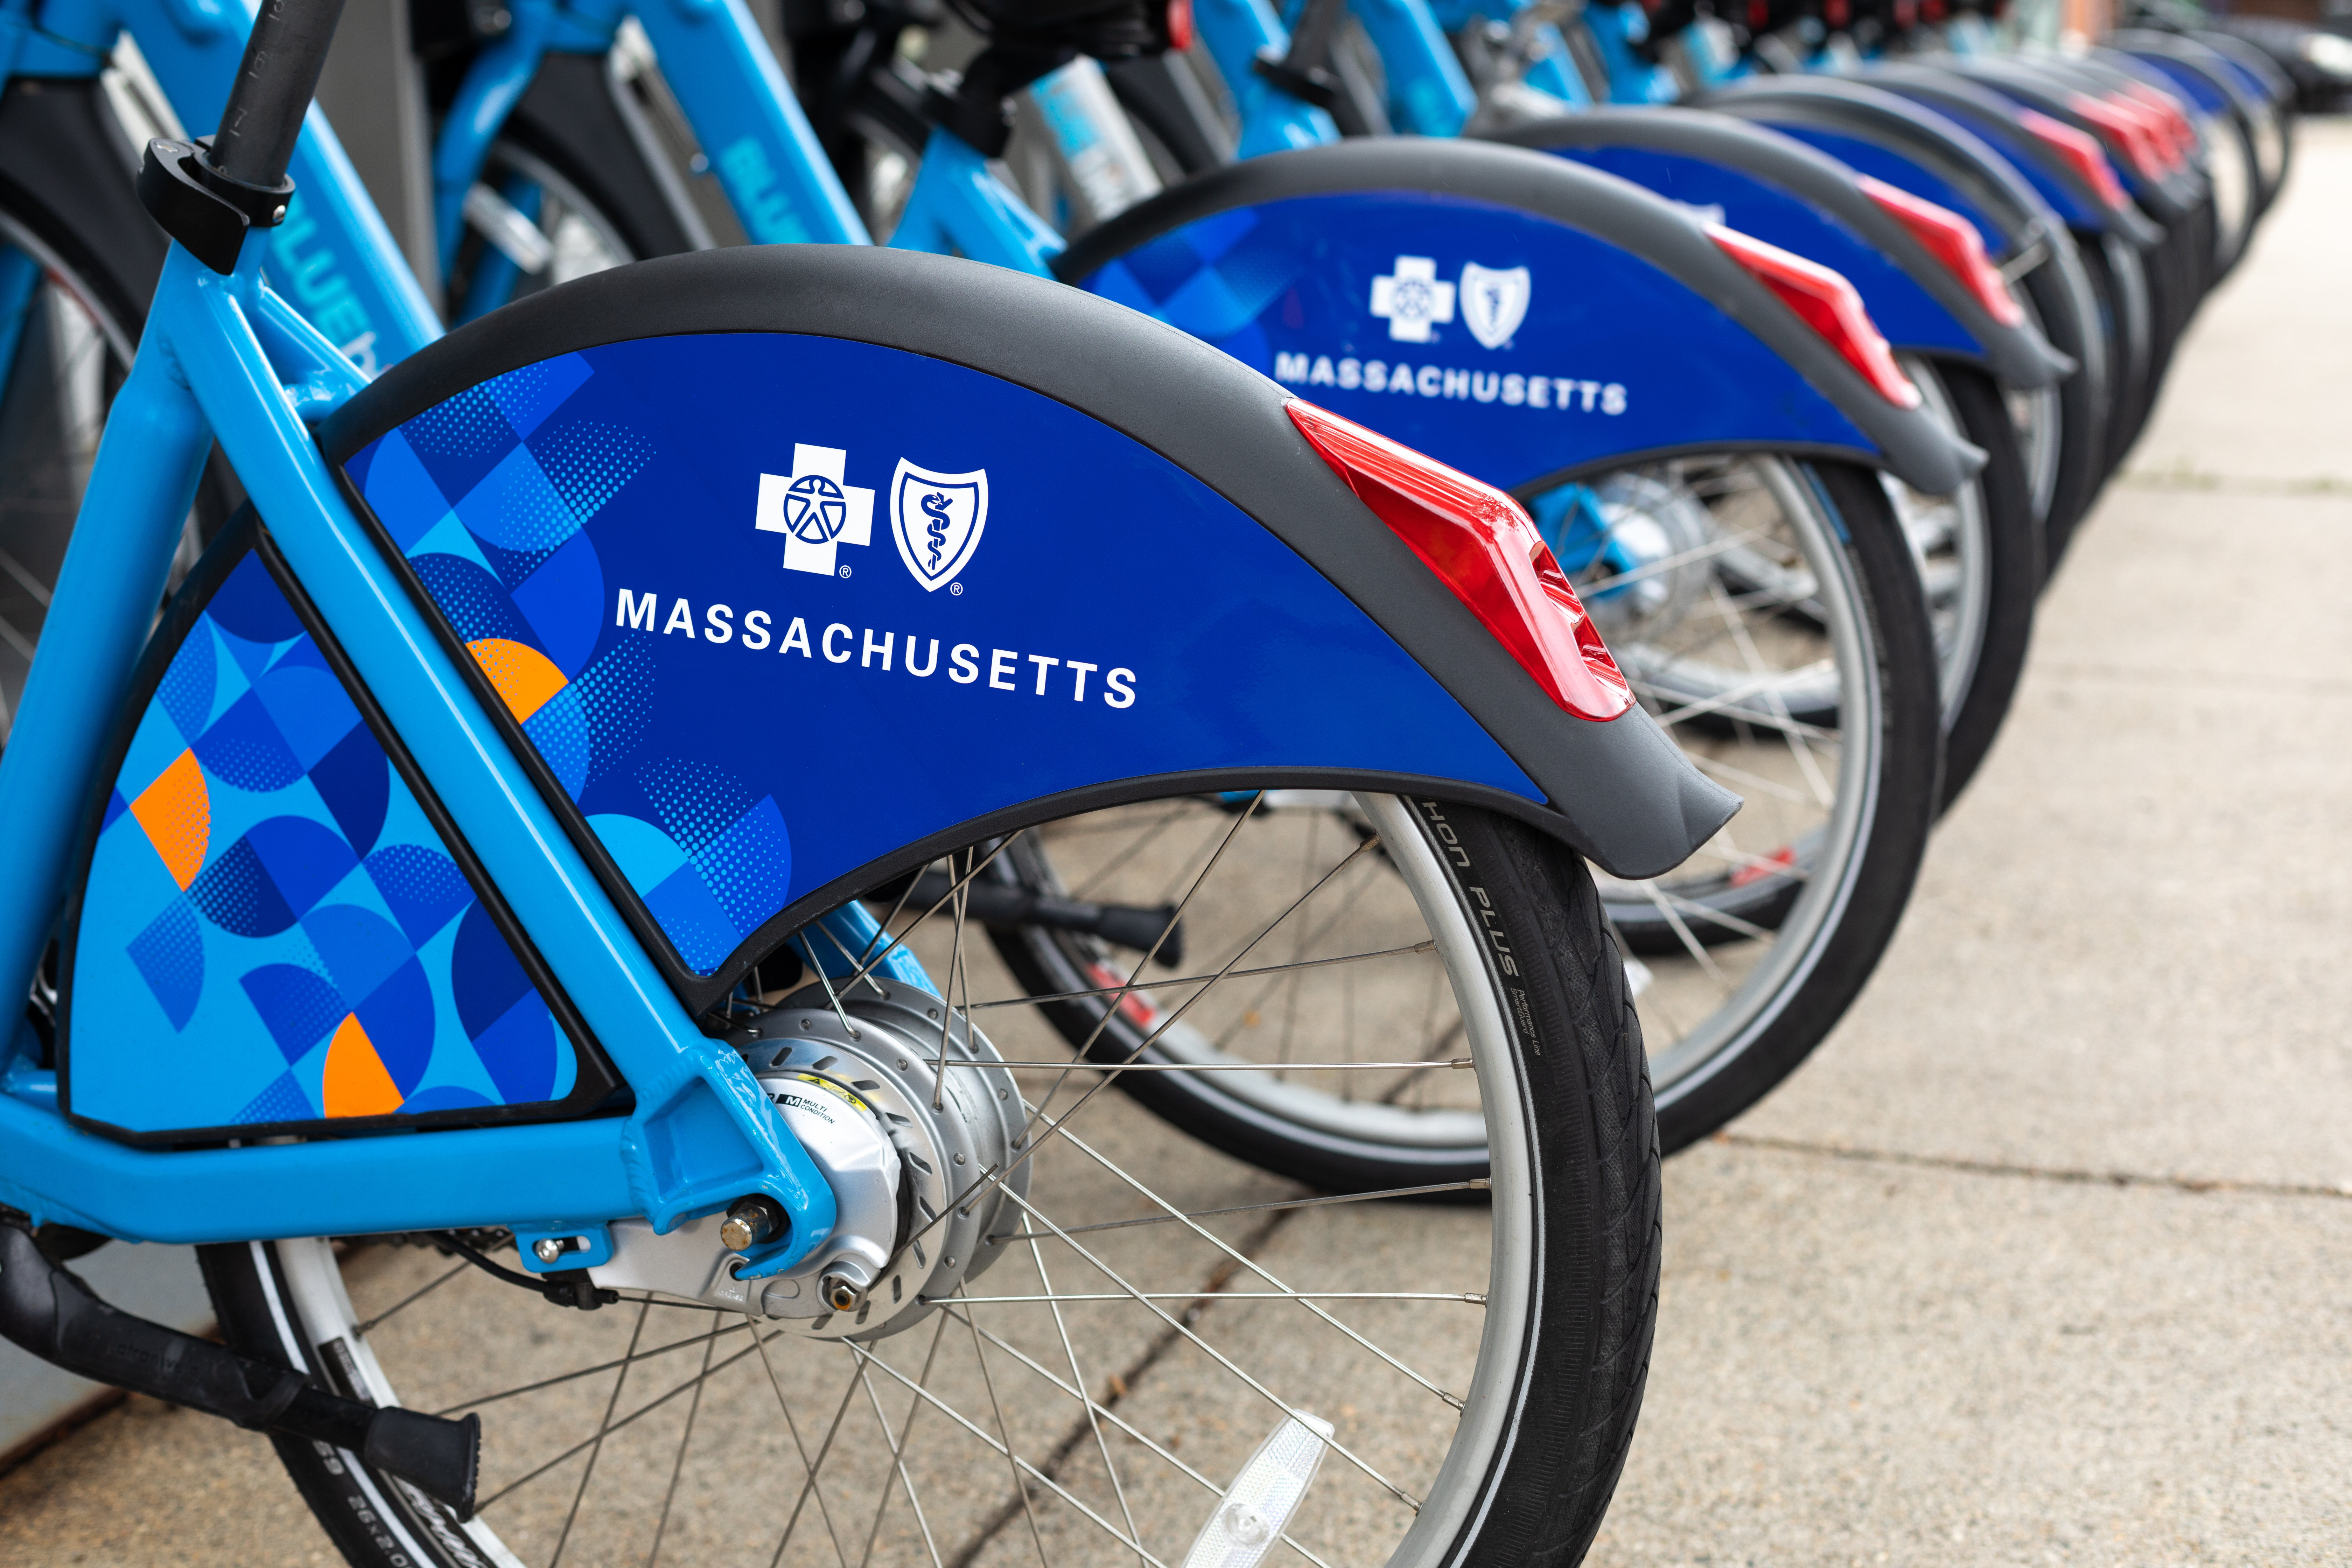 Bluebikes could expand into Arlington, Watertown, Newton, Chelsea, and Revere